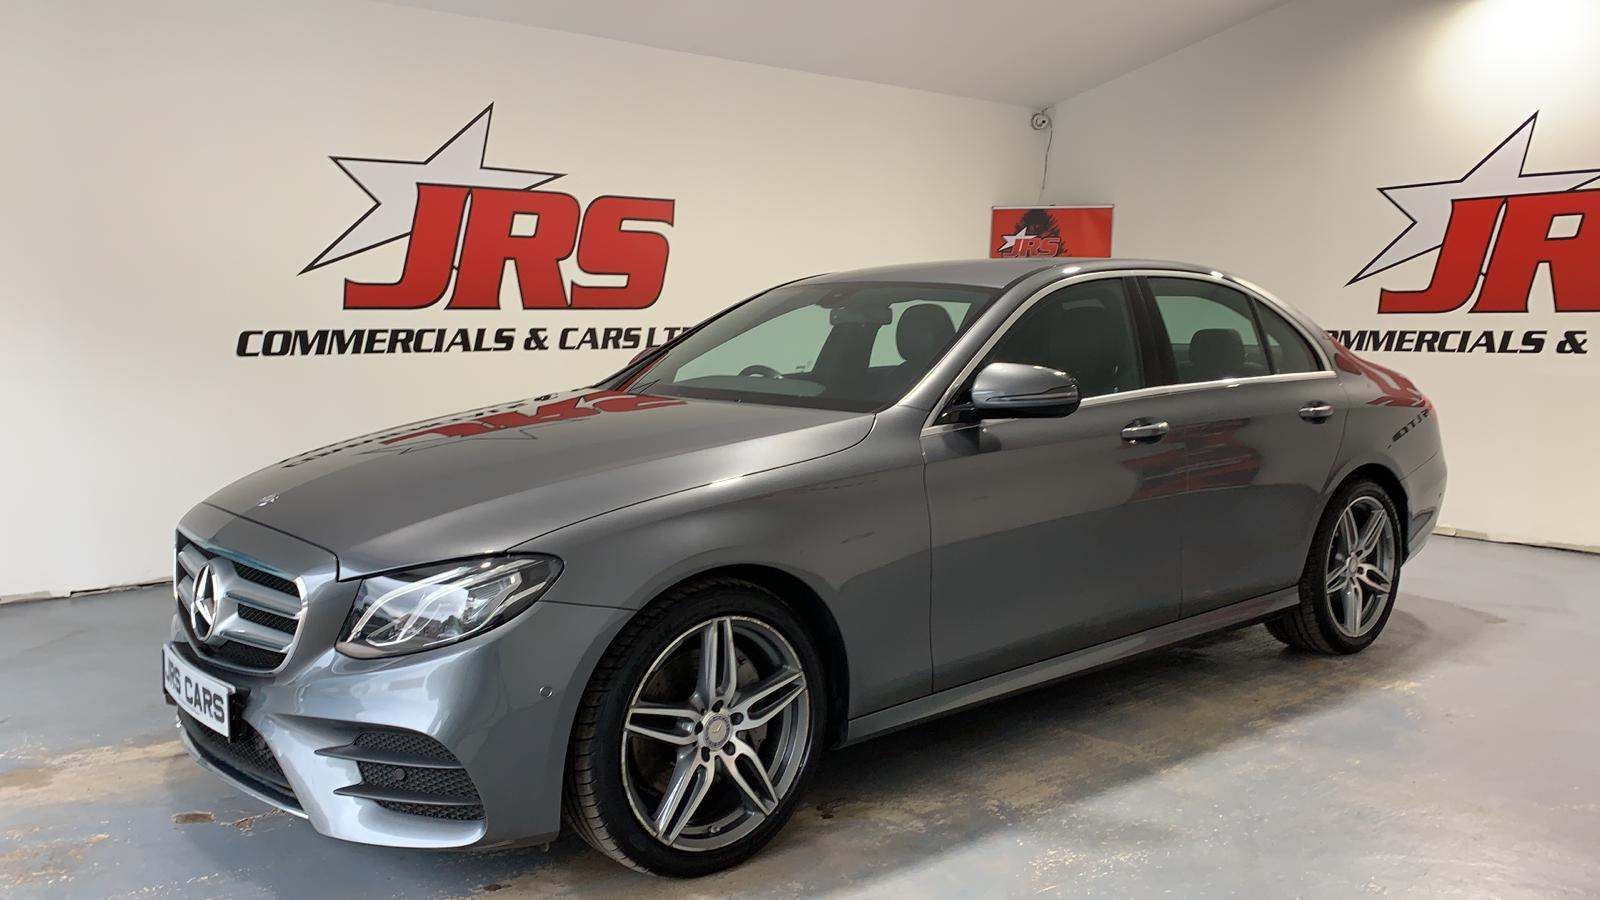 2017 MERCEDES BENZ E Class 2.0 E220d AMG Line G-Tronic+ (s/s) Diesel Automatic Sat Nav- Reversing Camera – J R S Commercials And Cars Dungannon full